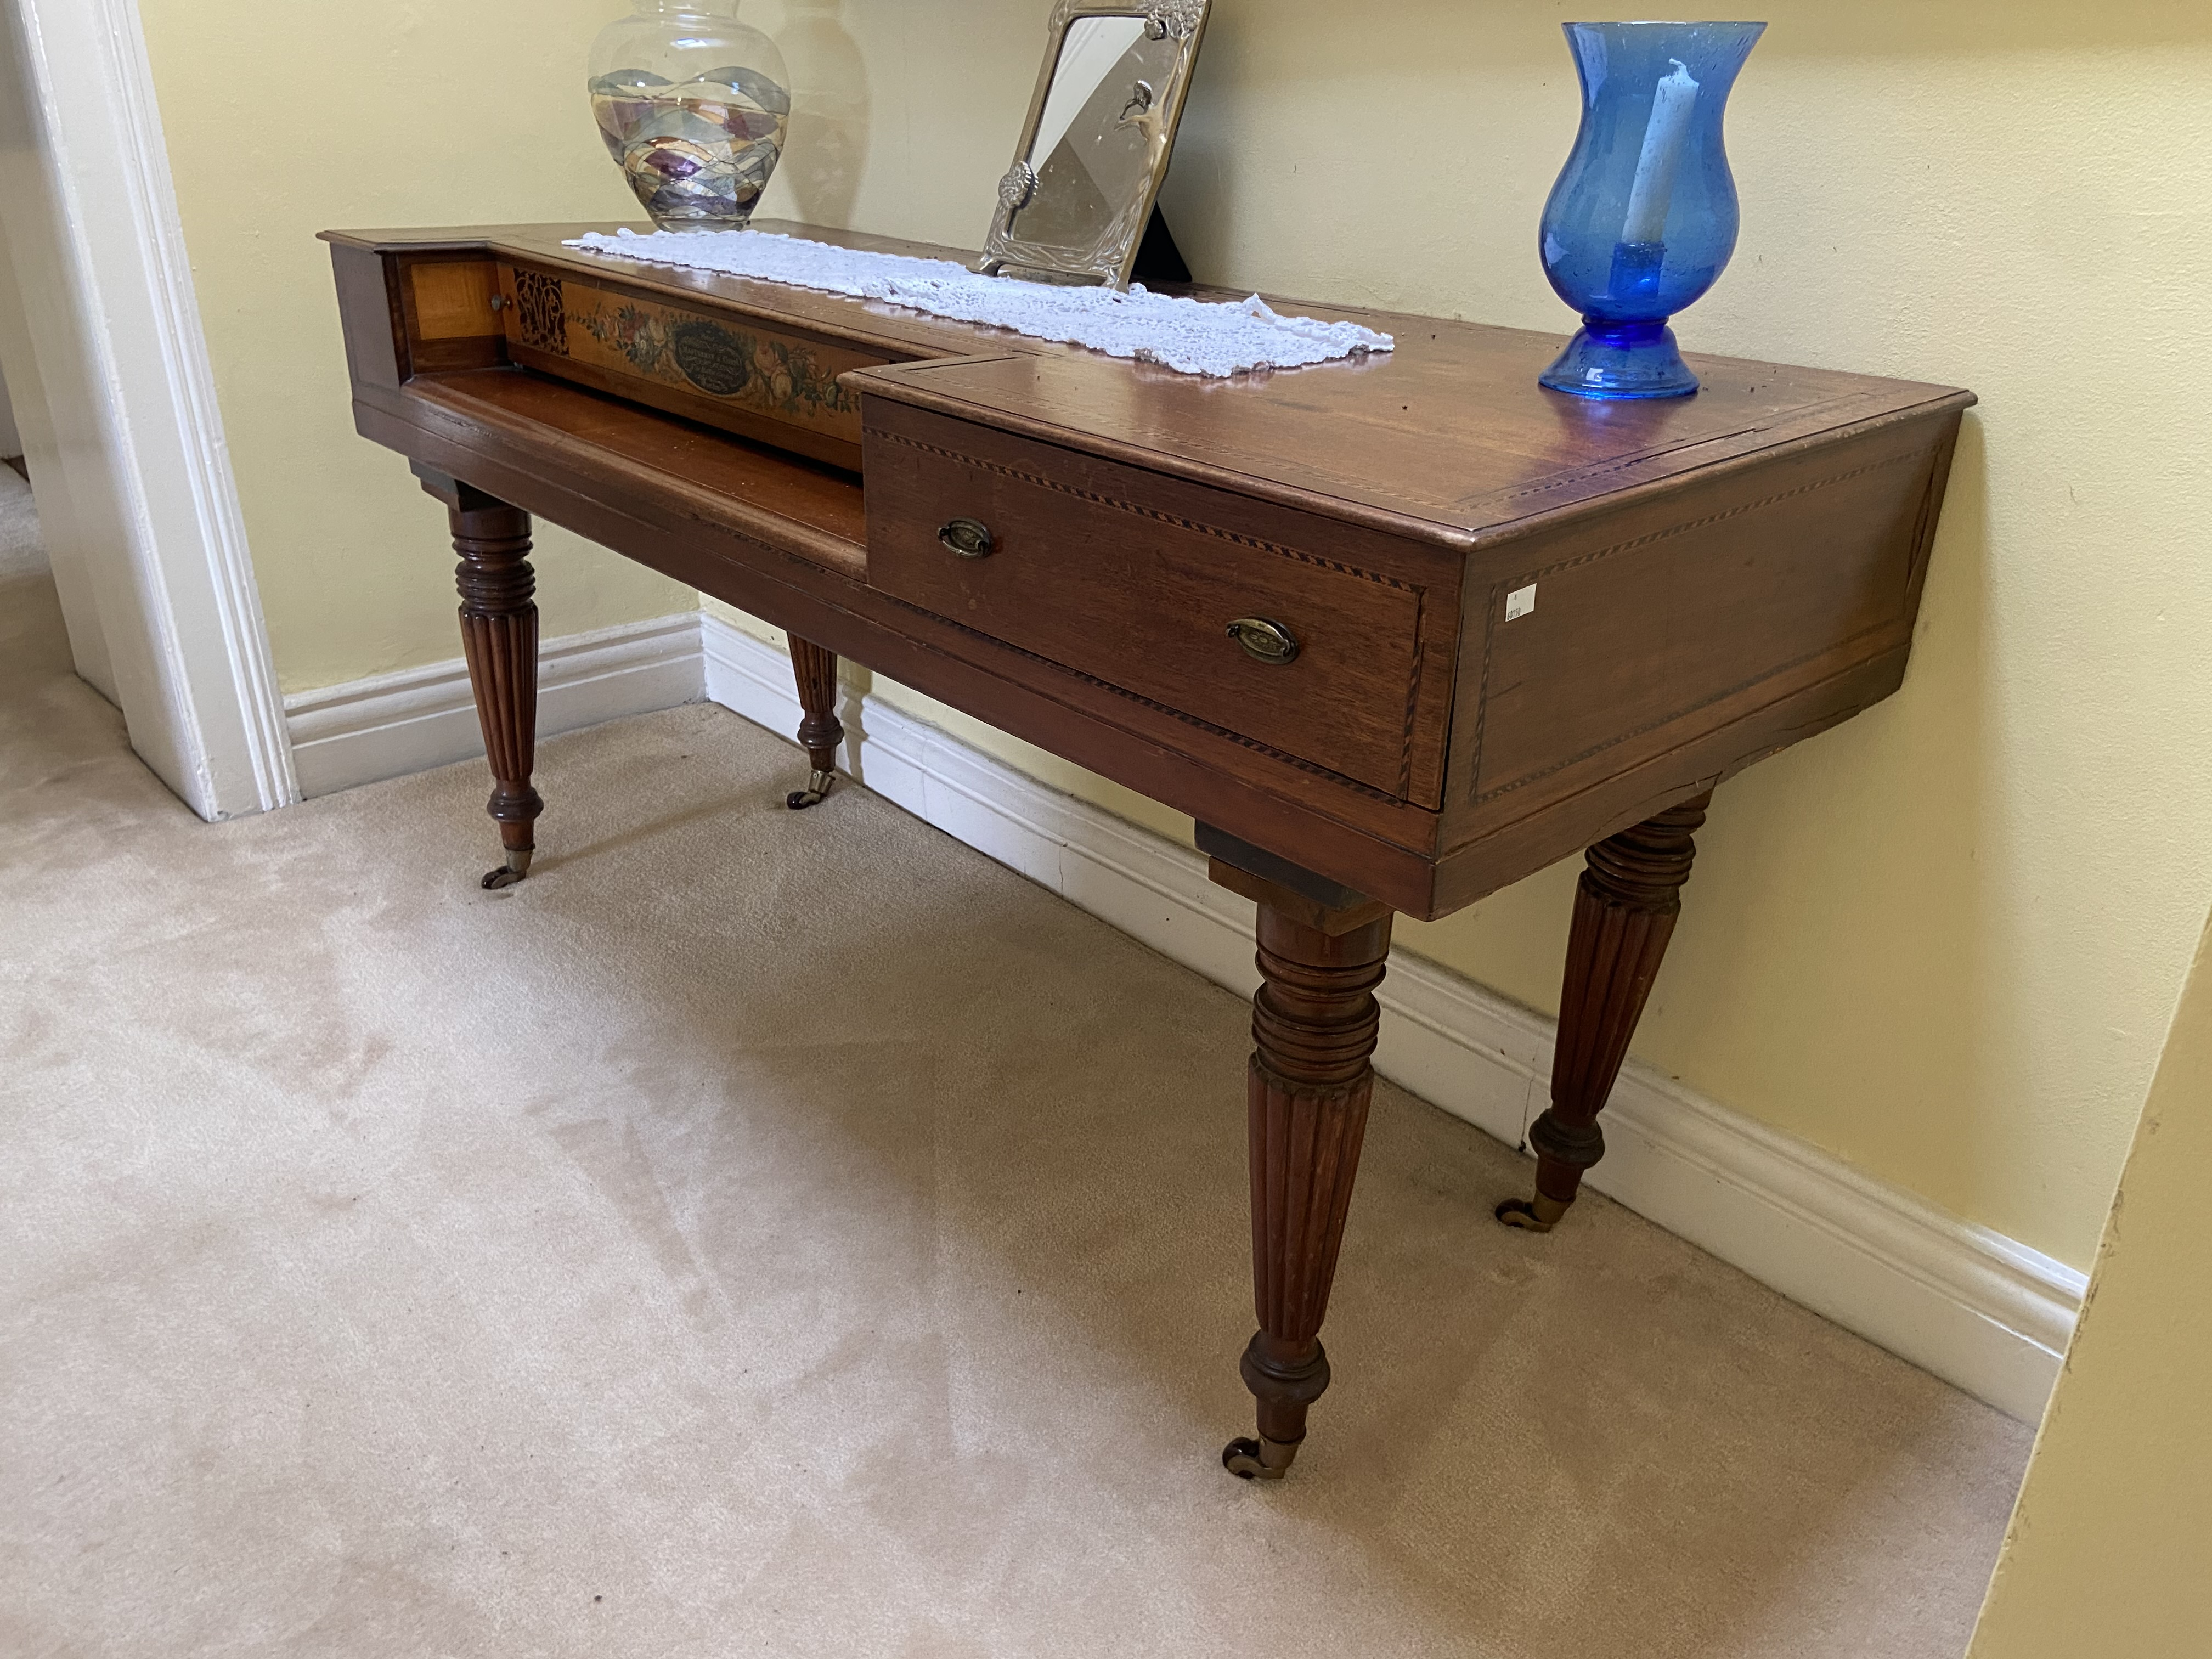 A Regency period Spinet, adopted with the label of Maslerman & Co., London, now with one long and